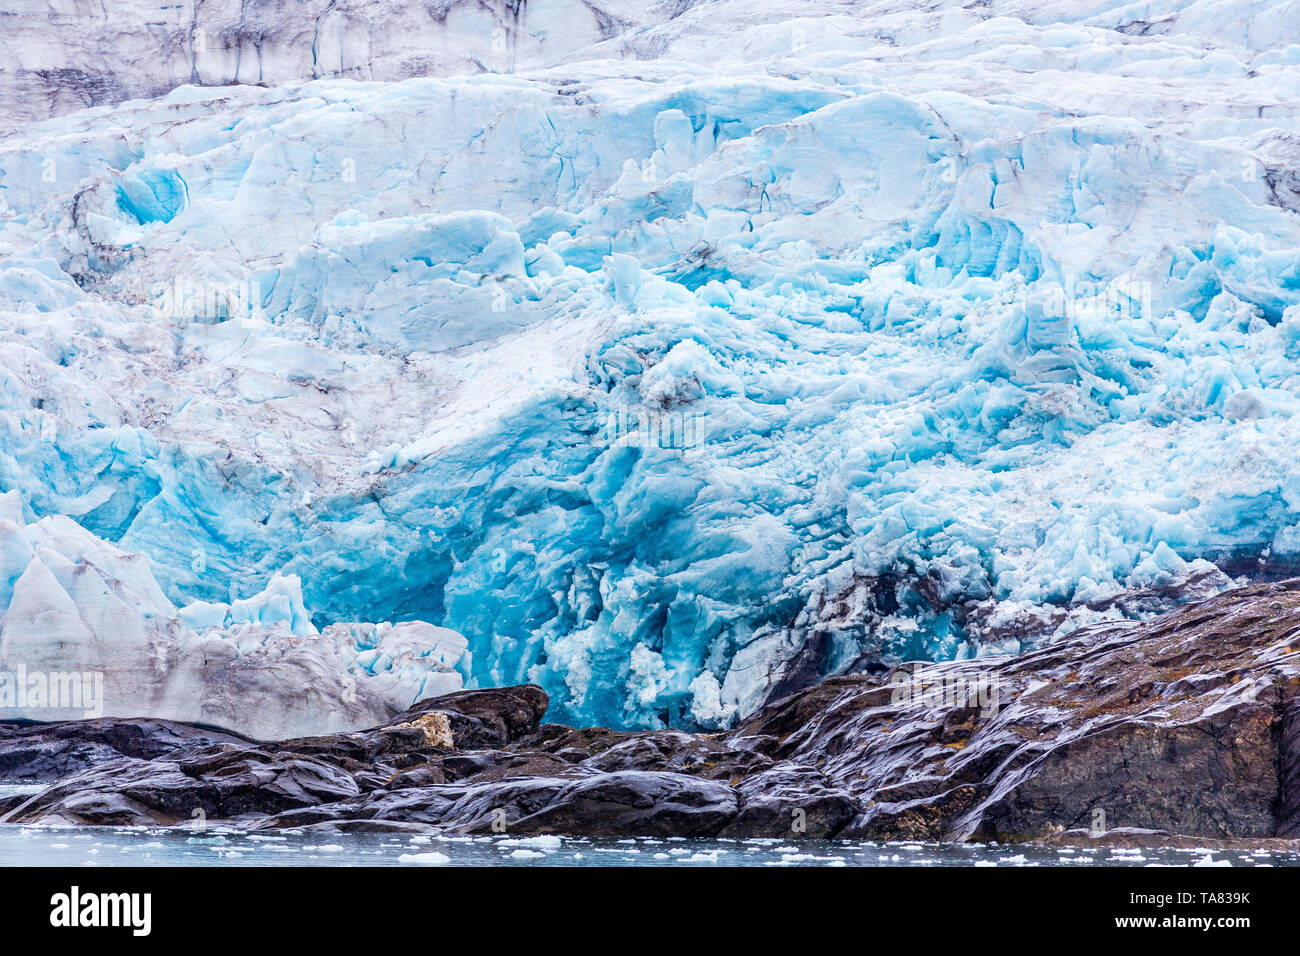 At the edge of the blue shining glacier Nordenskiöldbreen near Pyramiden, on the coast of Billefjord, Svalbard. Norway - Stock Image